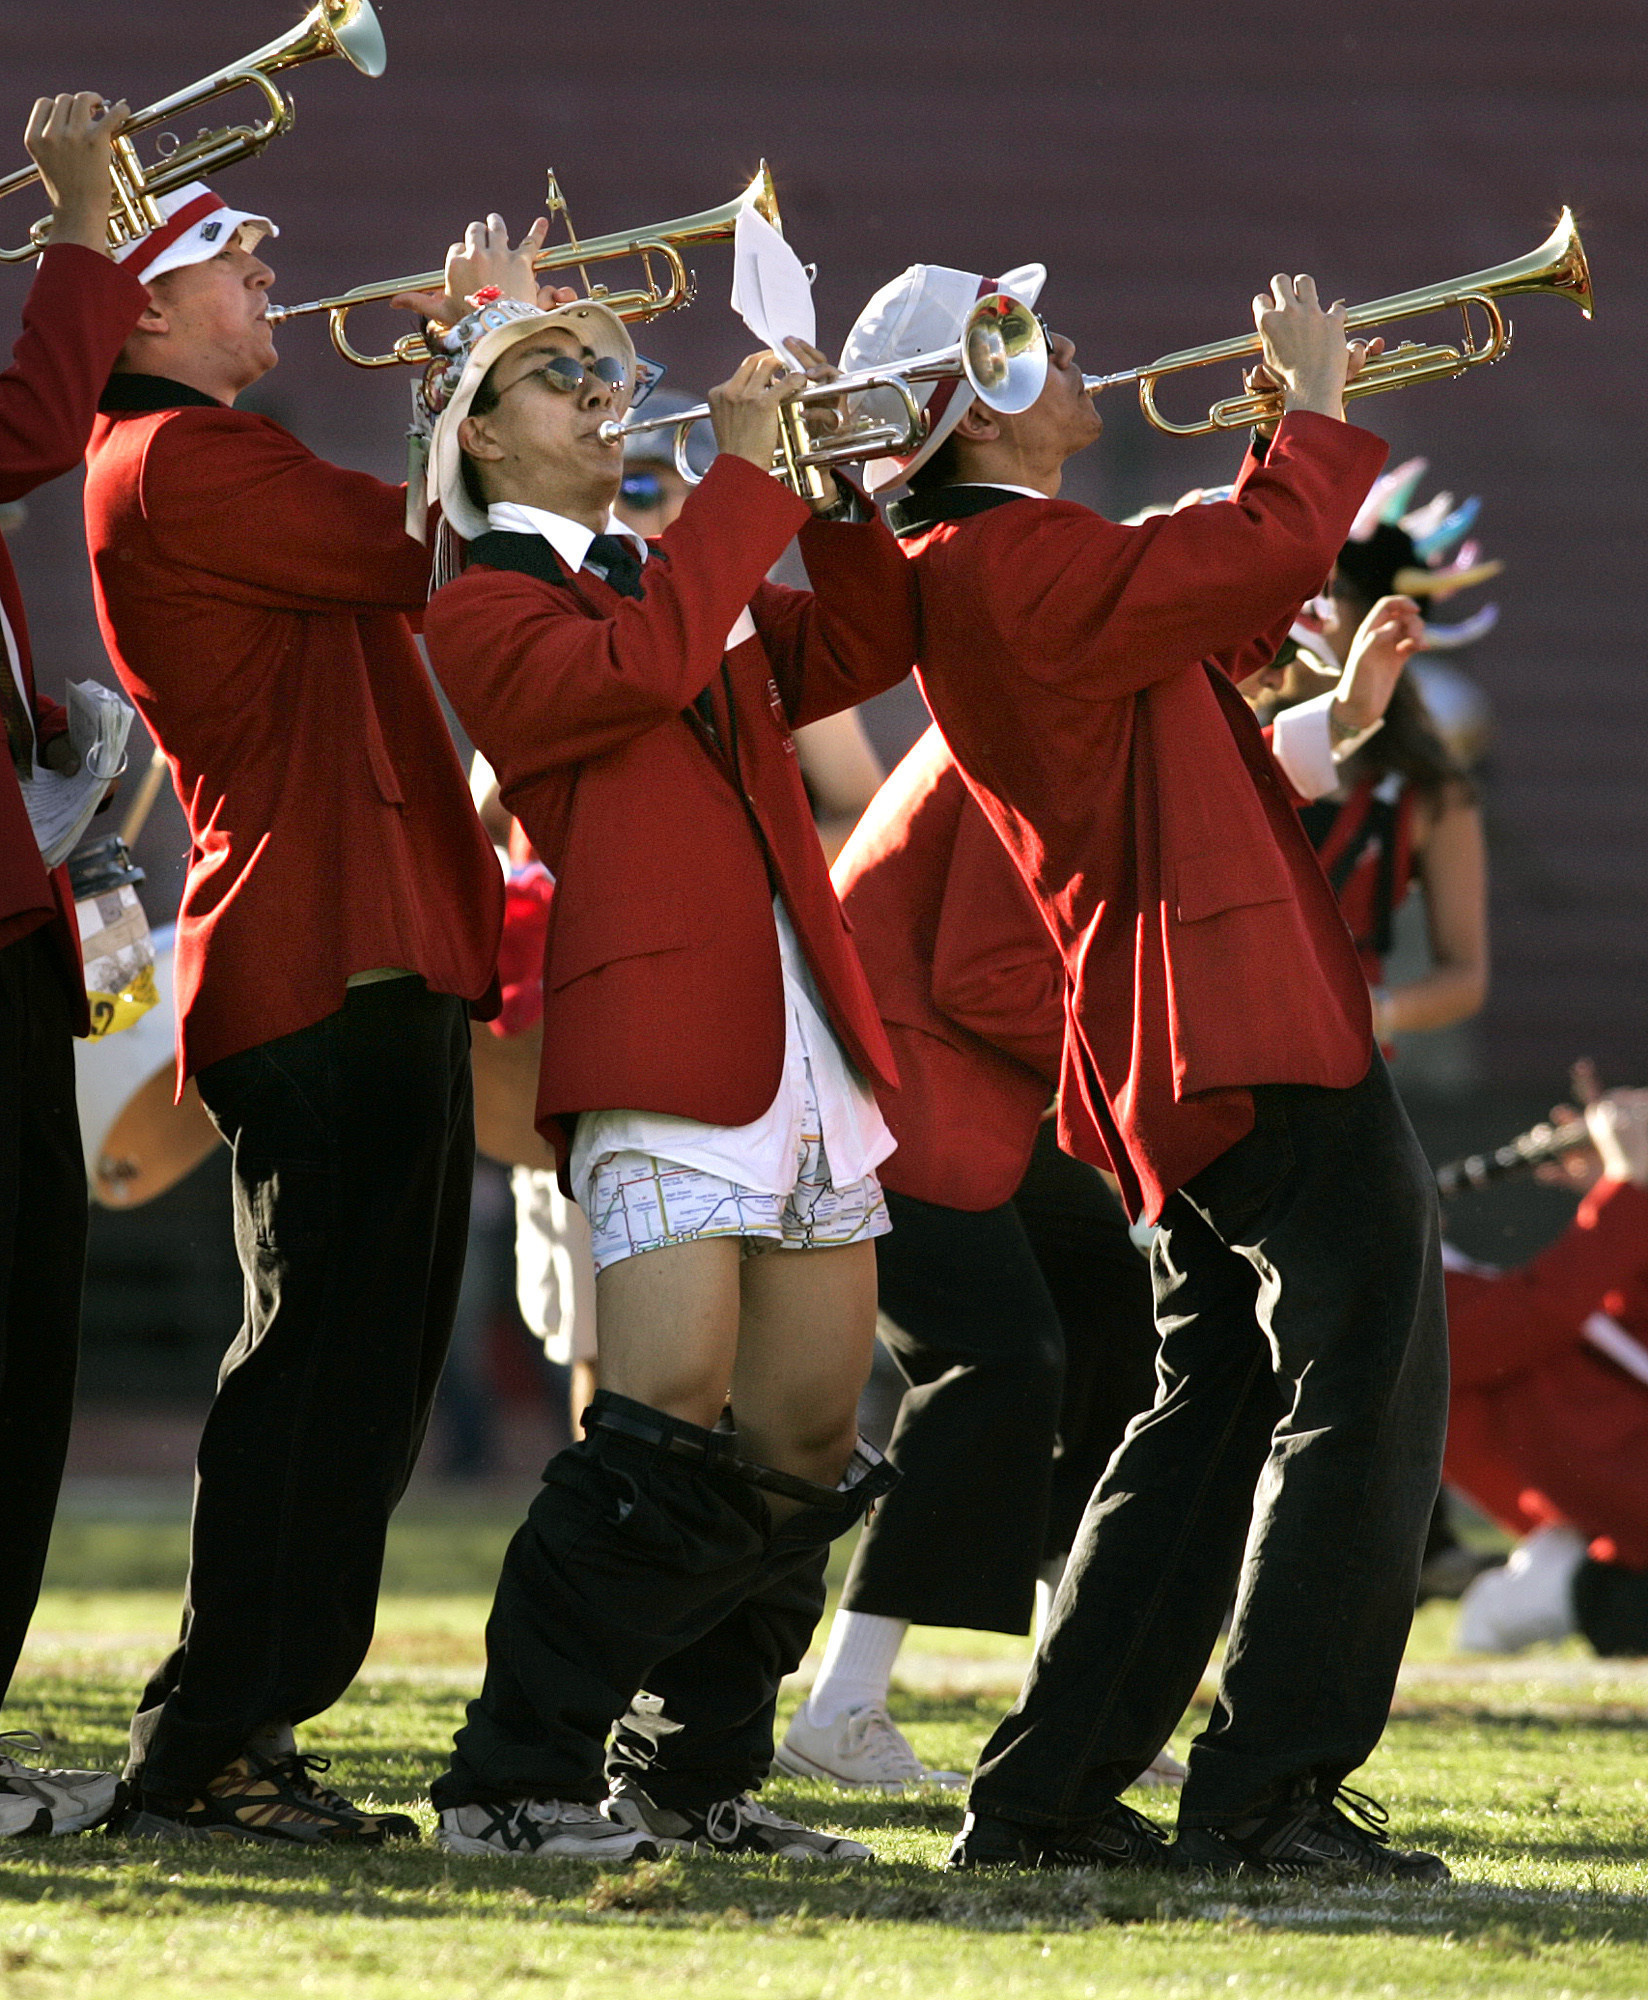 Banded Bands: Stanford University Band Suspended After Being Accused Of